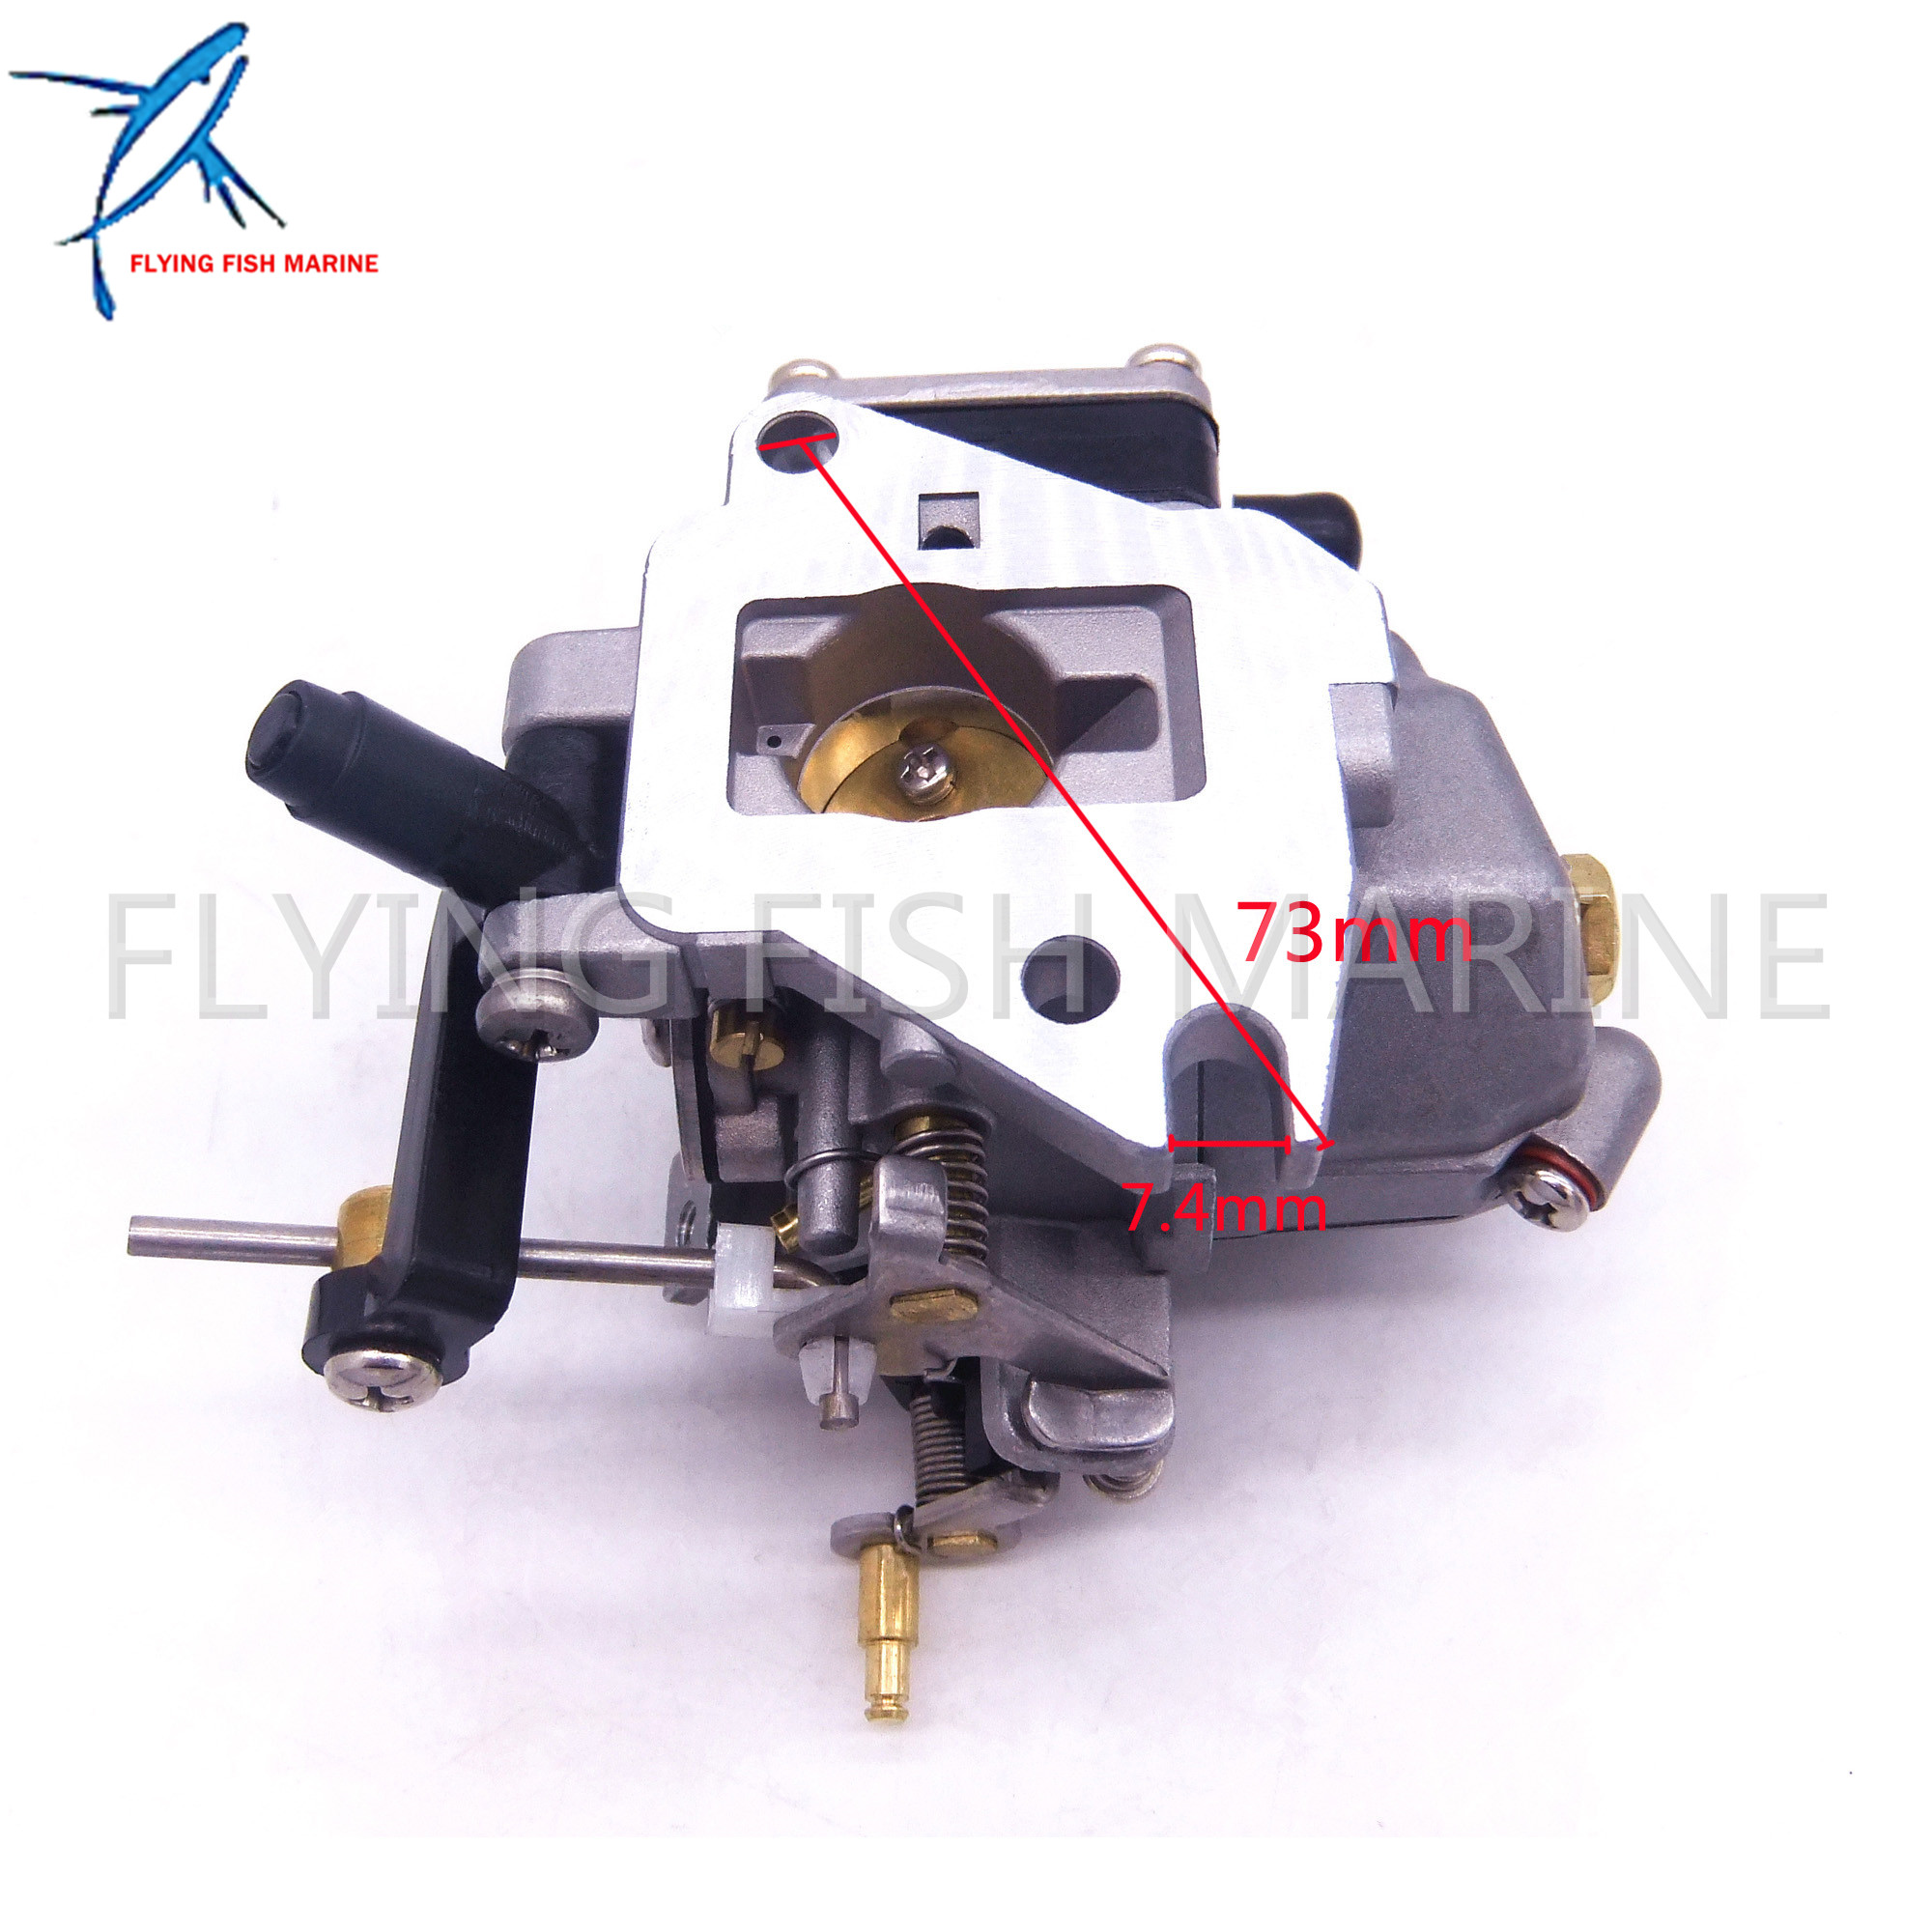 6E8-14301-05 6E7-14301 684-14301 2-stroke 9.9hp 15hp Boat Motor Carburetor Carb assy For Yamaha Outboard Engines boat engines 2e